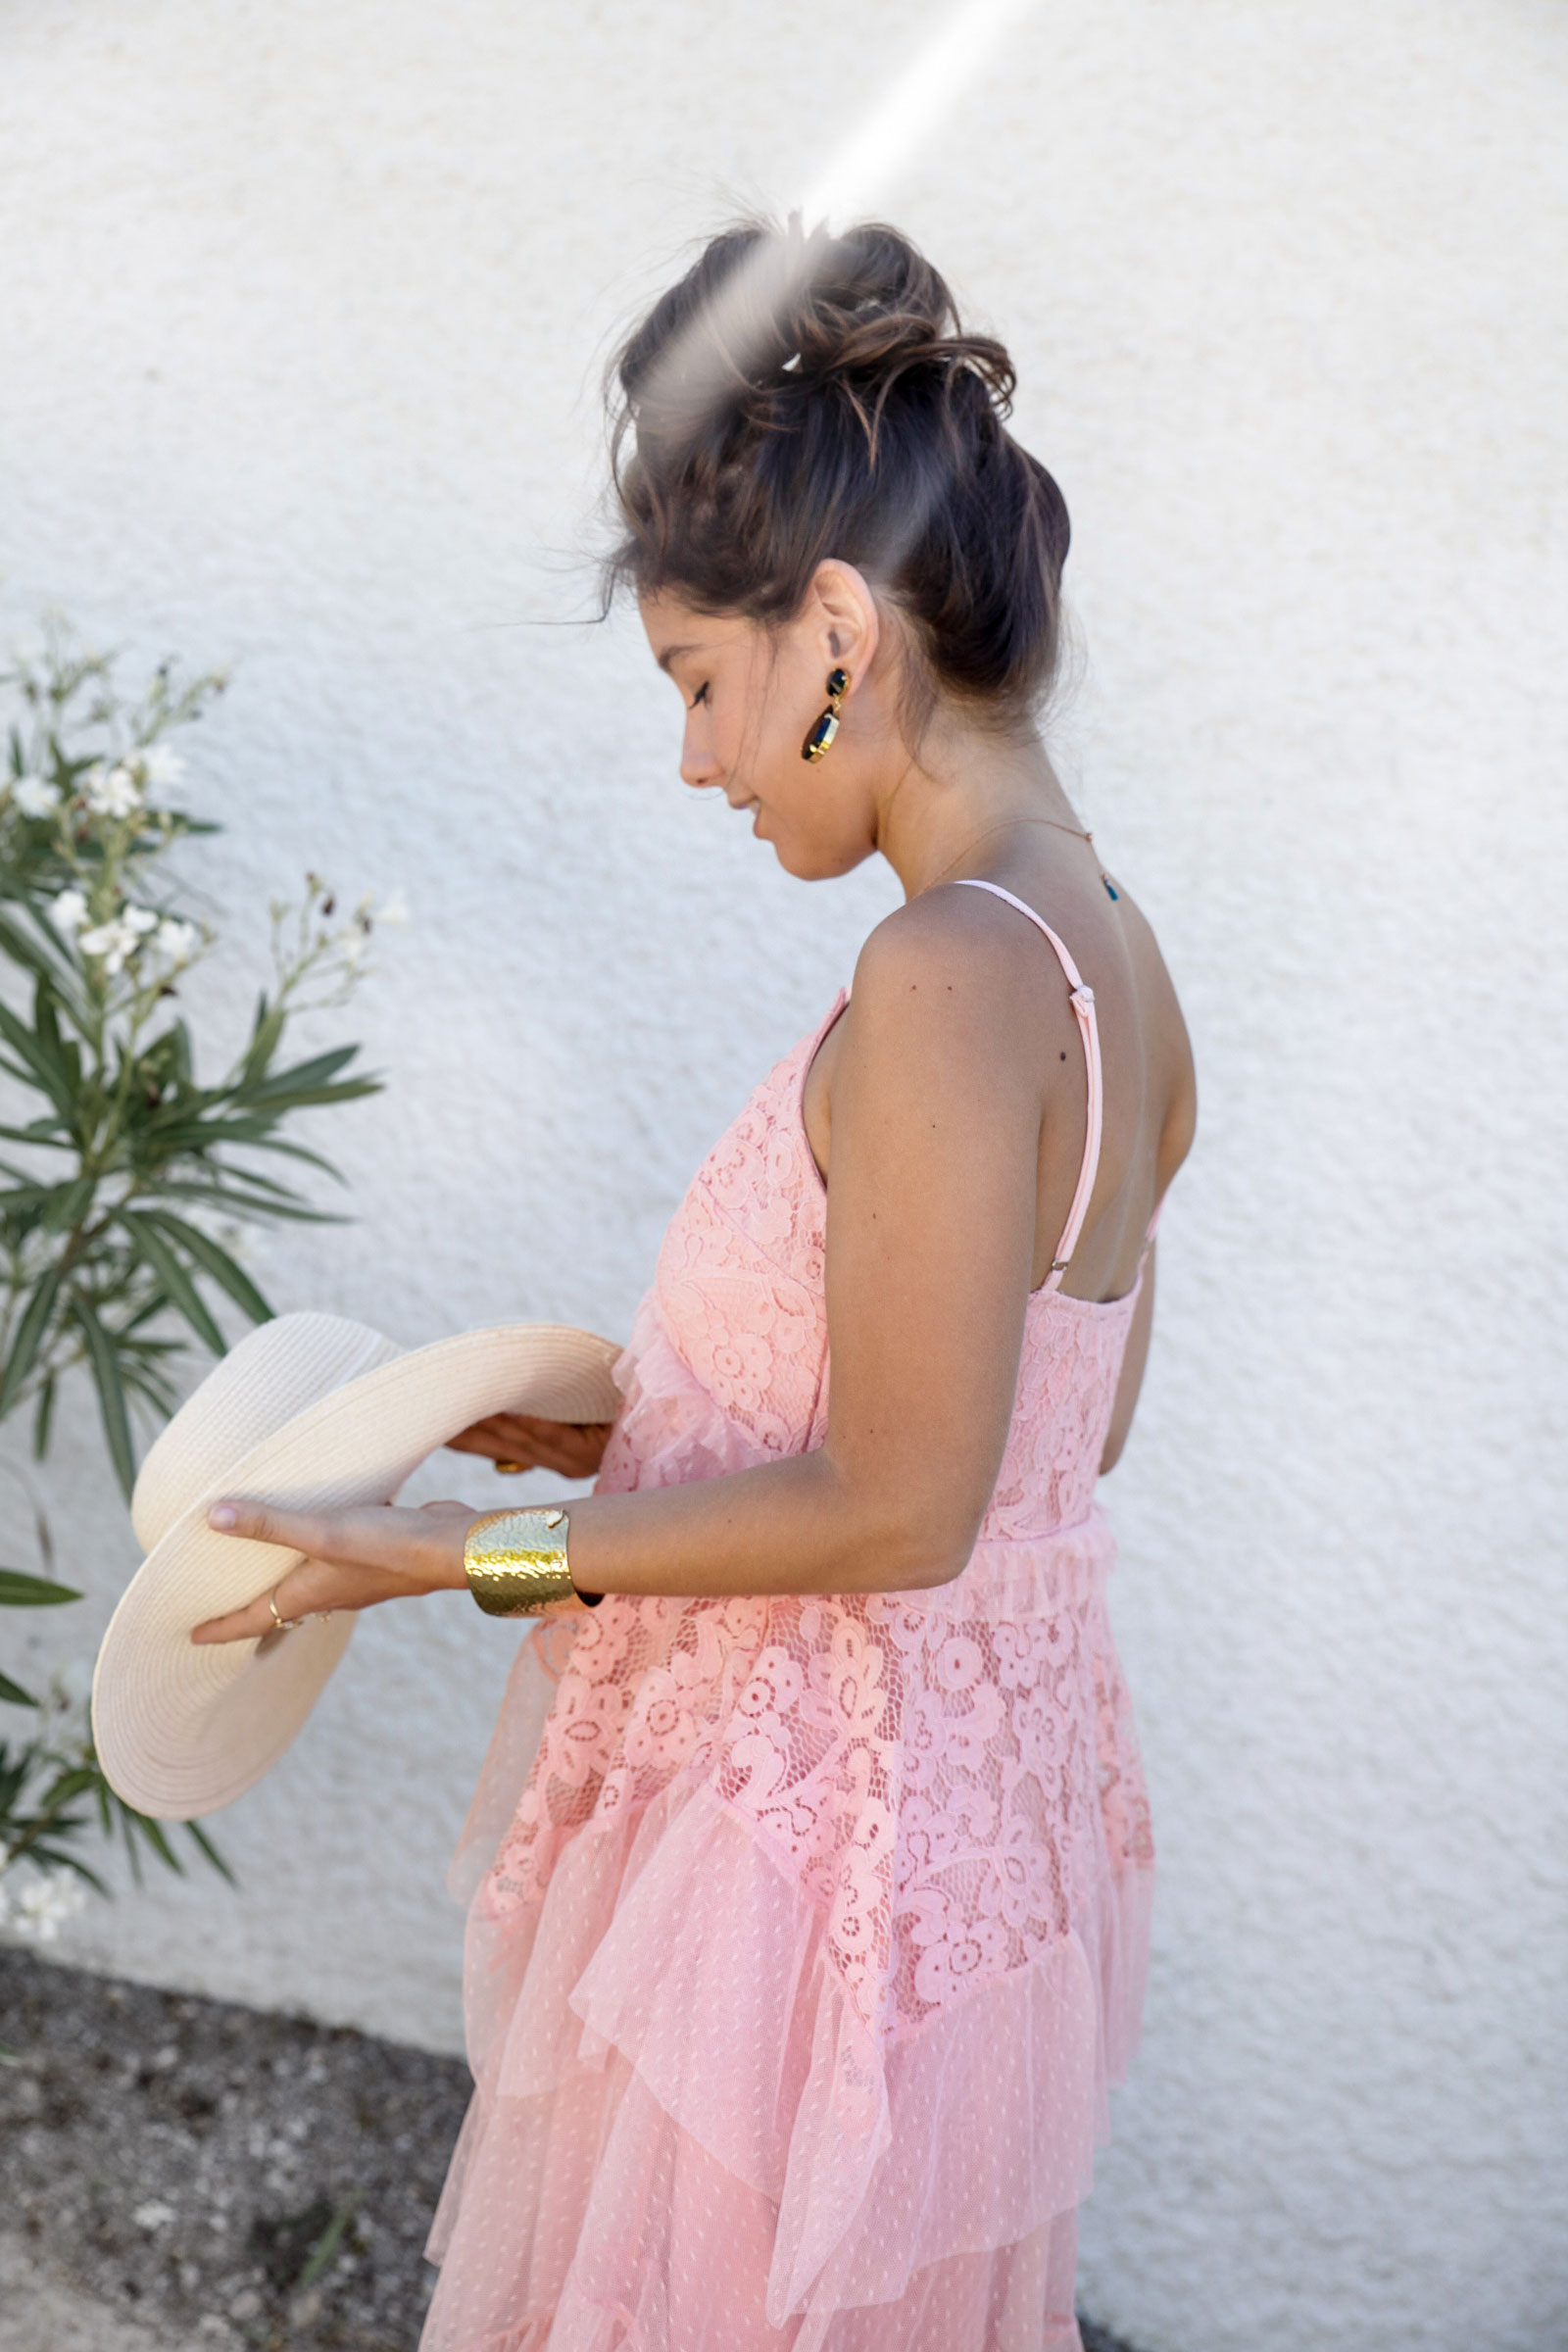 07_vestido_largo_rosa_para_verano_theguestgirl_influencer_noholita_collagevintage_sincerelyjules_ninauc_paulagonu_danity_paris_dress_ambassador_spain